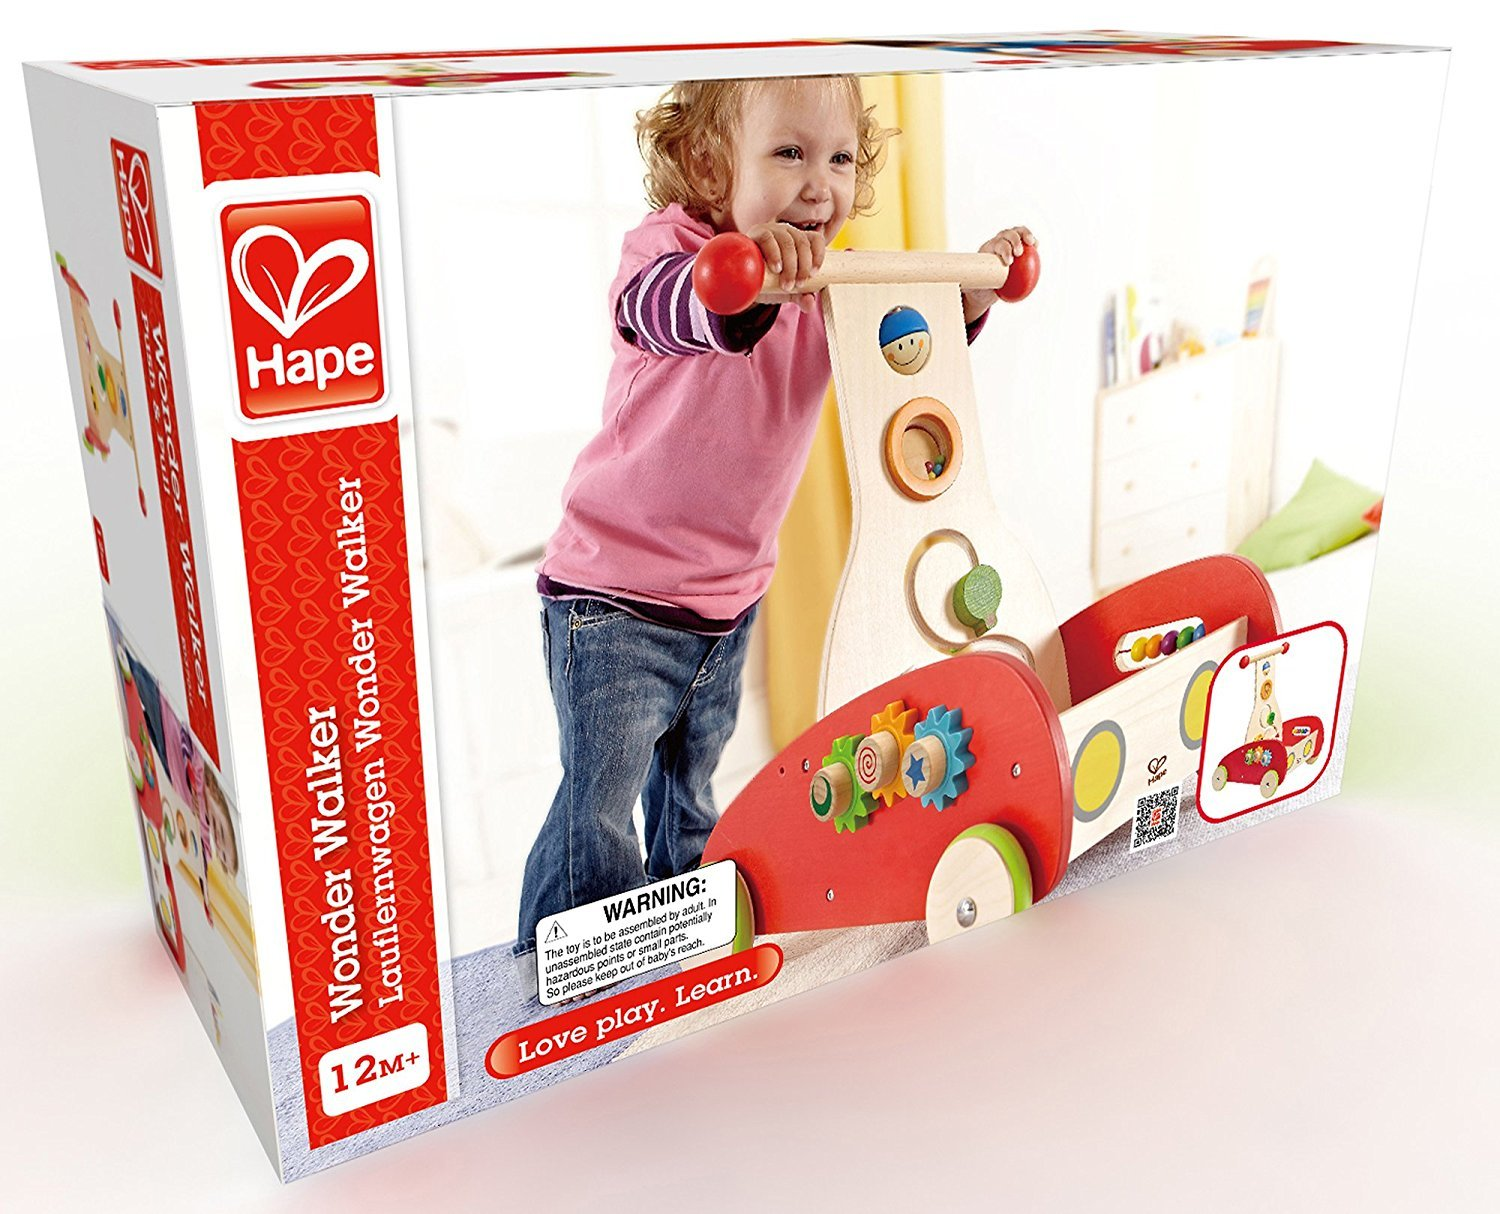 Hape: Wonder Walker image